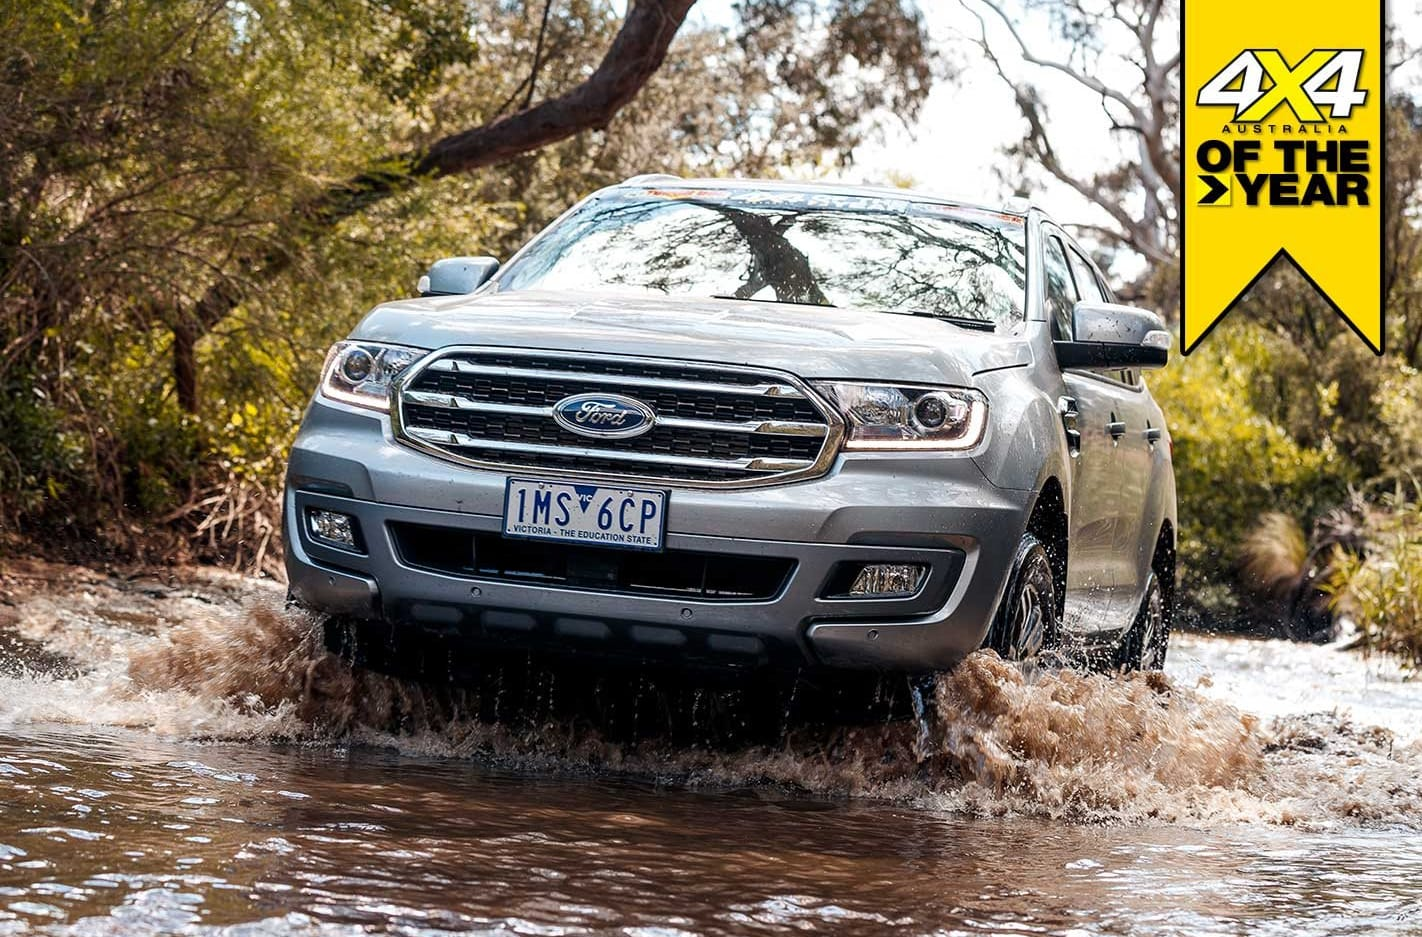 2019 4x4 of the Year Ford Everest Trend review